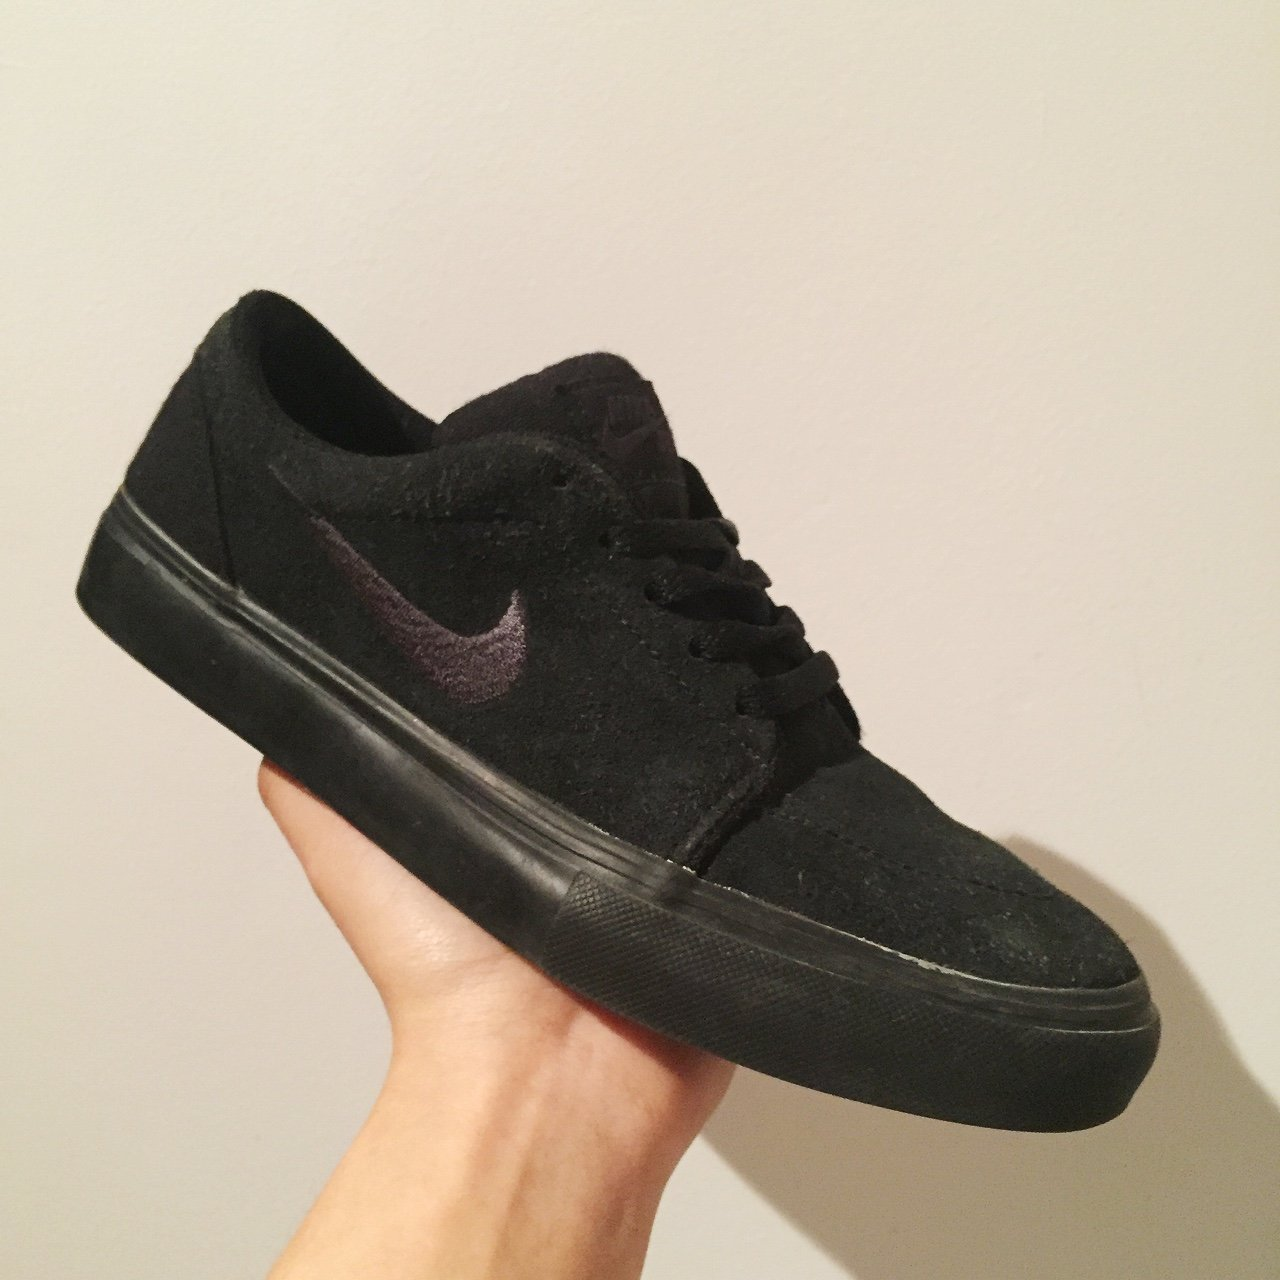 22cb593f2753 Nike SB all black skate shoes/janoskis. Size 5.5 UK. In as a - Depop